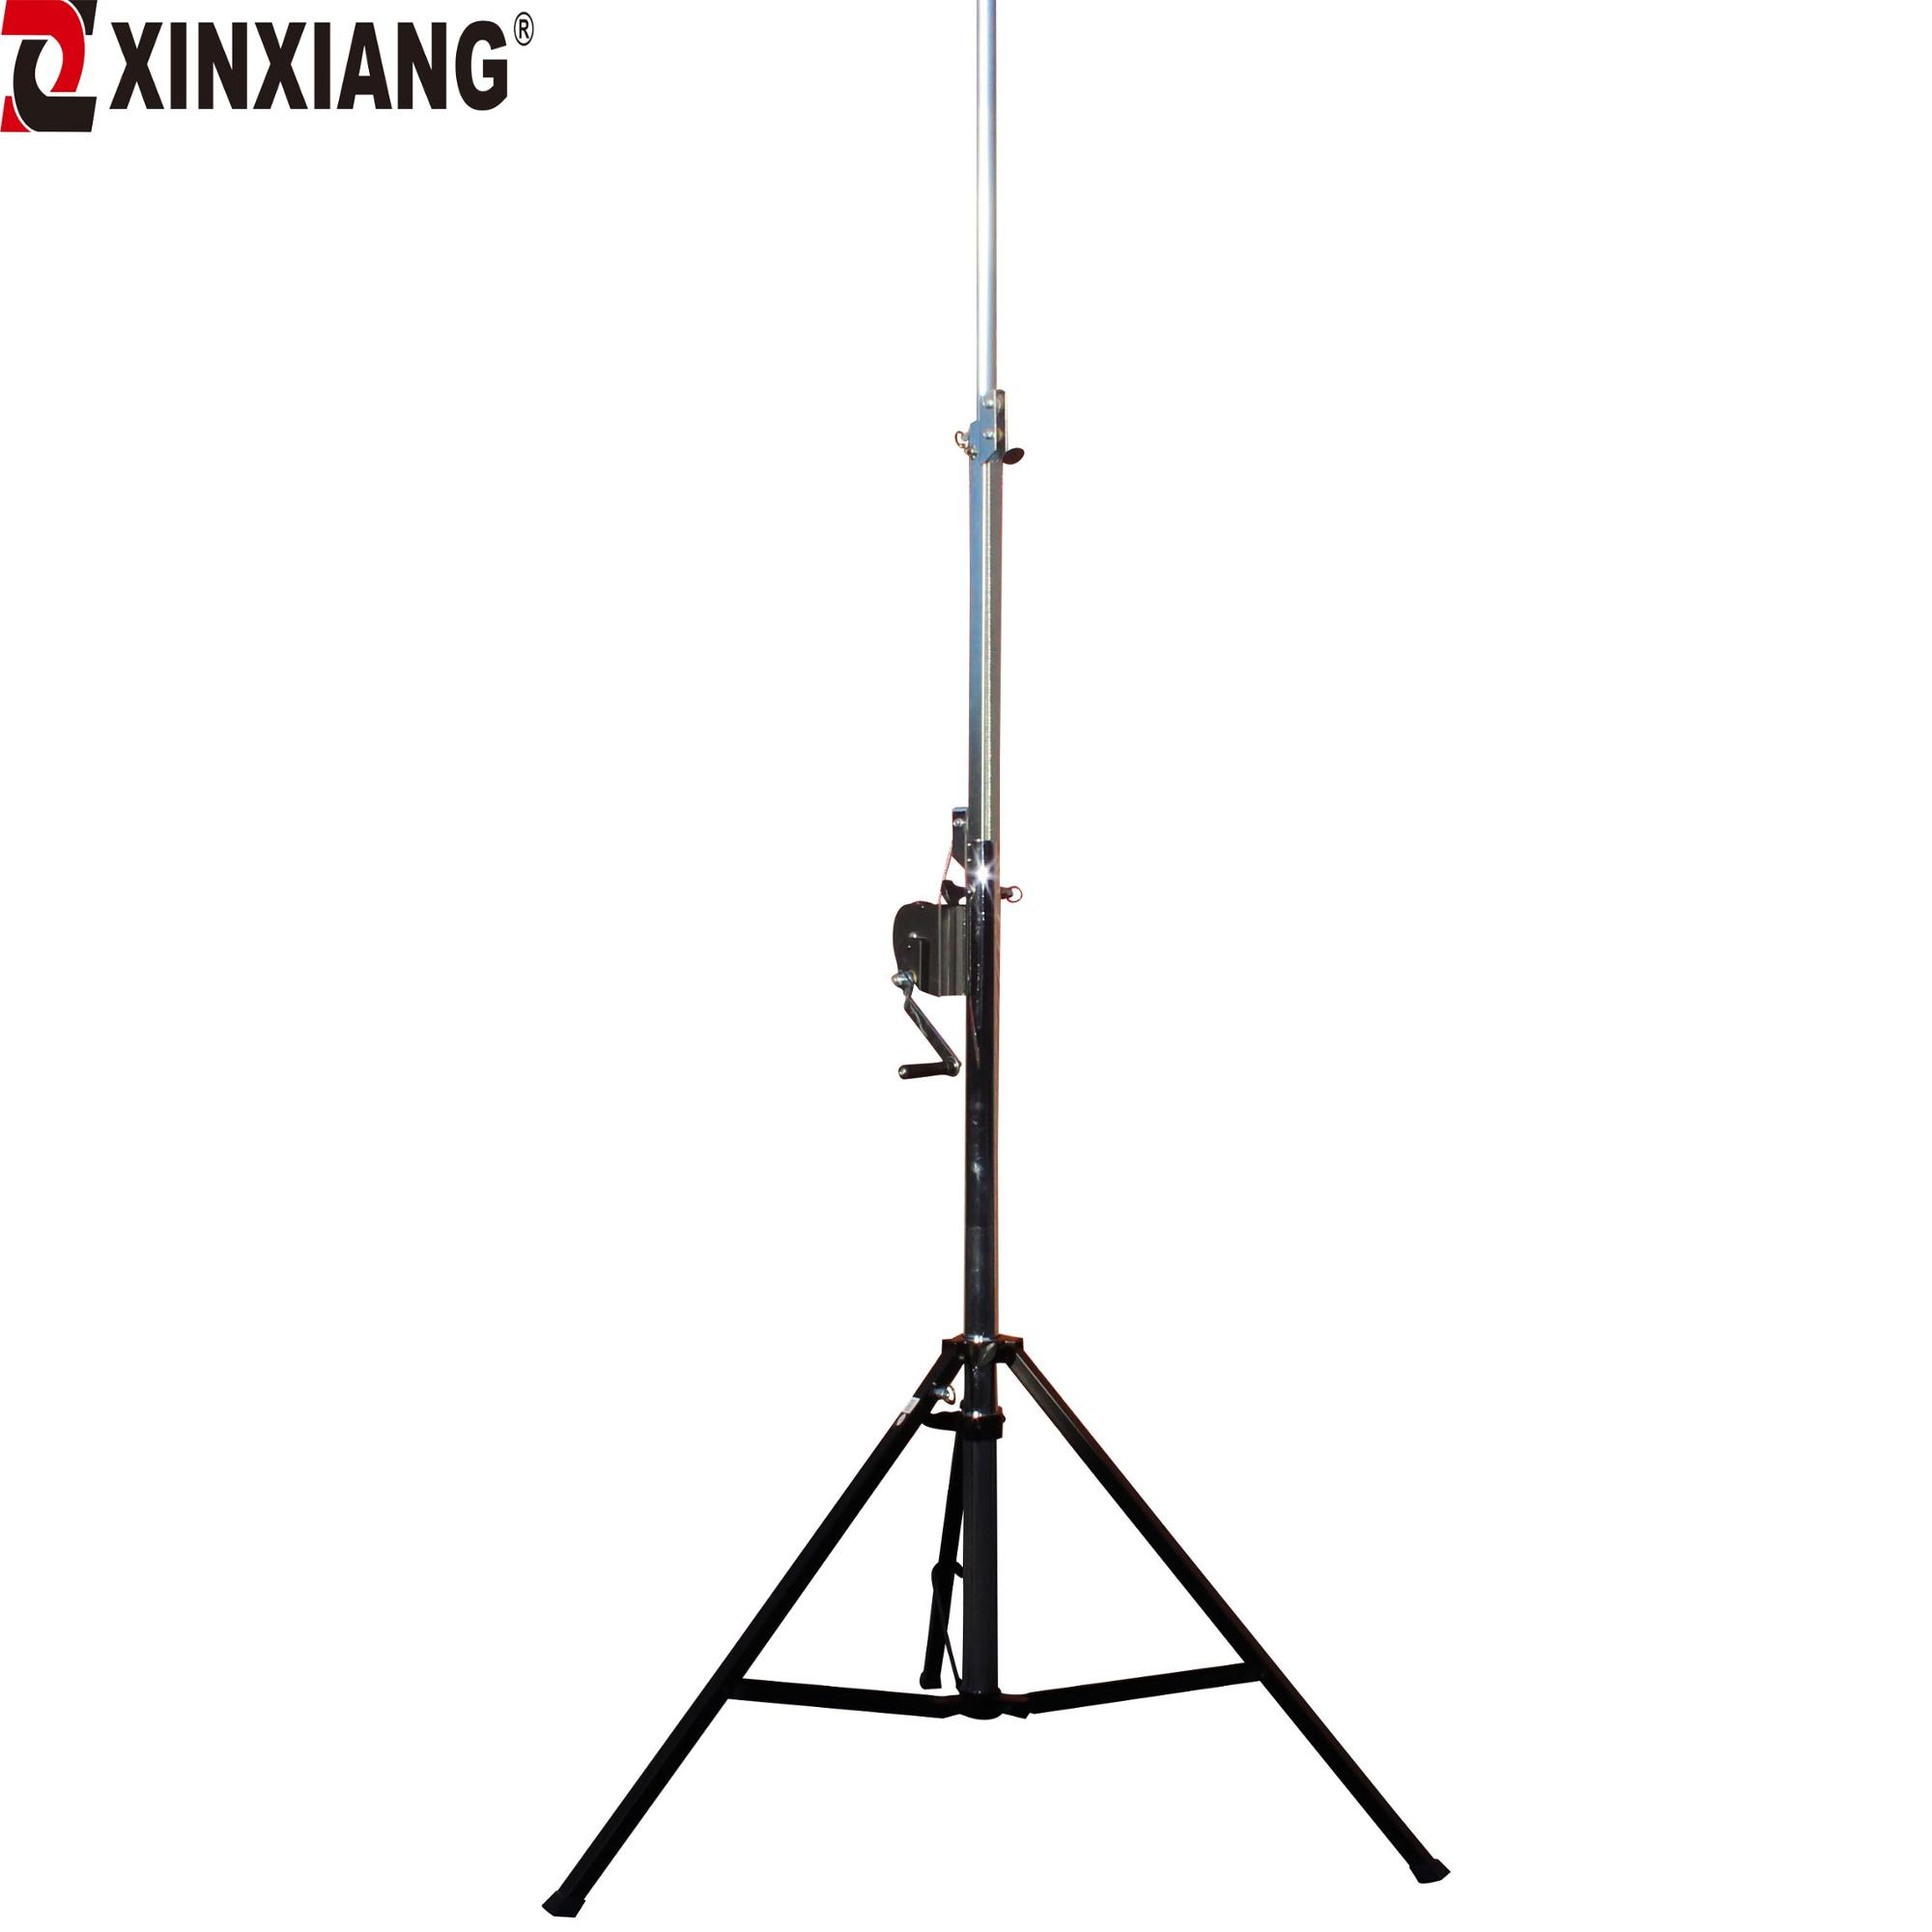 China supplier led strip light accessories spotlight studio light tripod stand